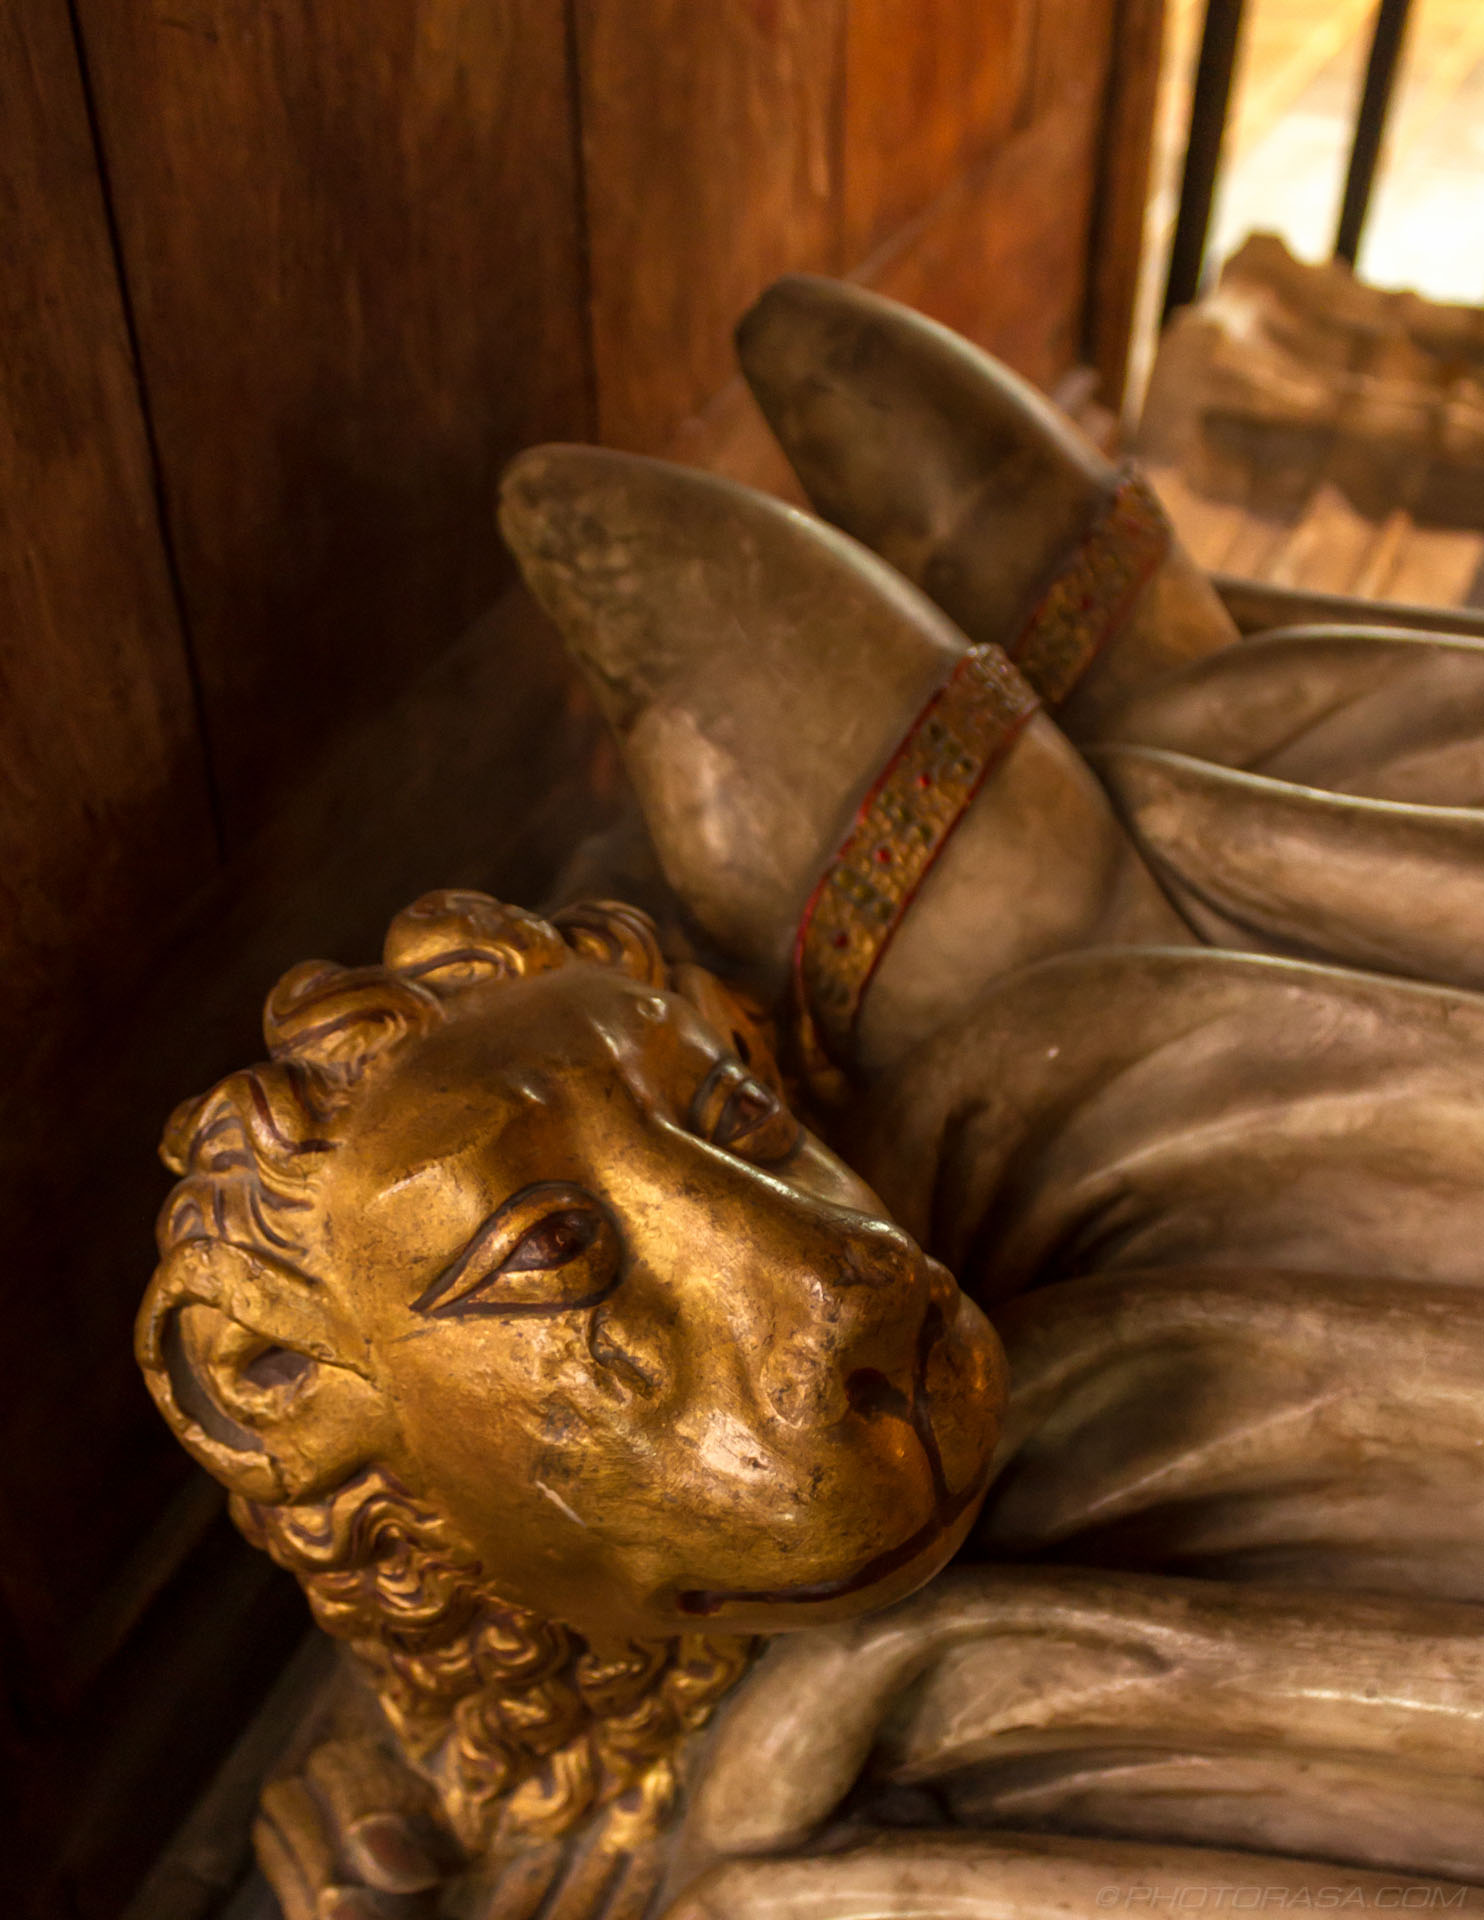 http://photorasa.com/canterbury-cathedral/lion-at-king-henrys-feet/